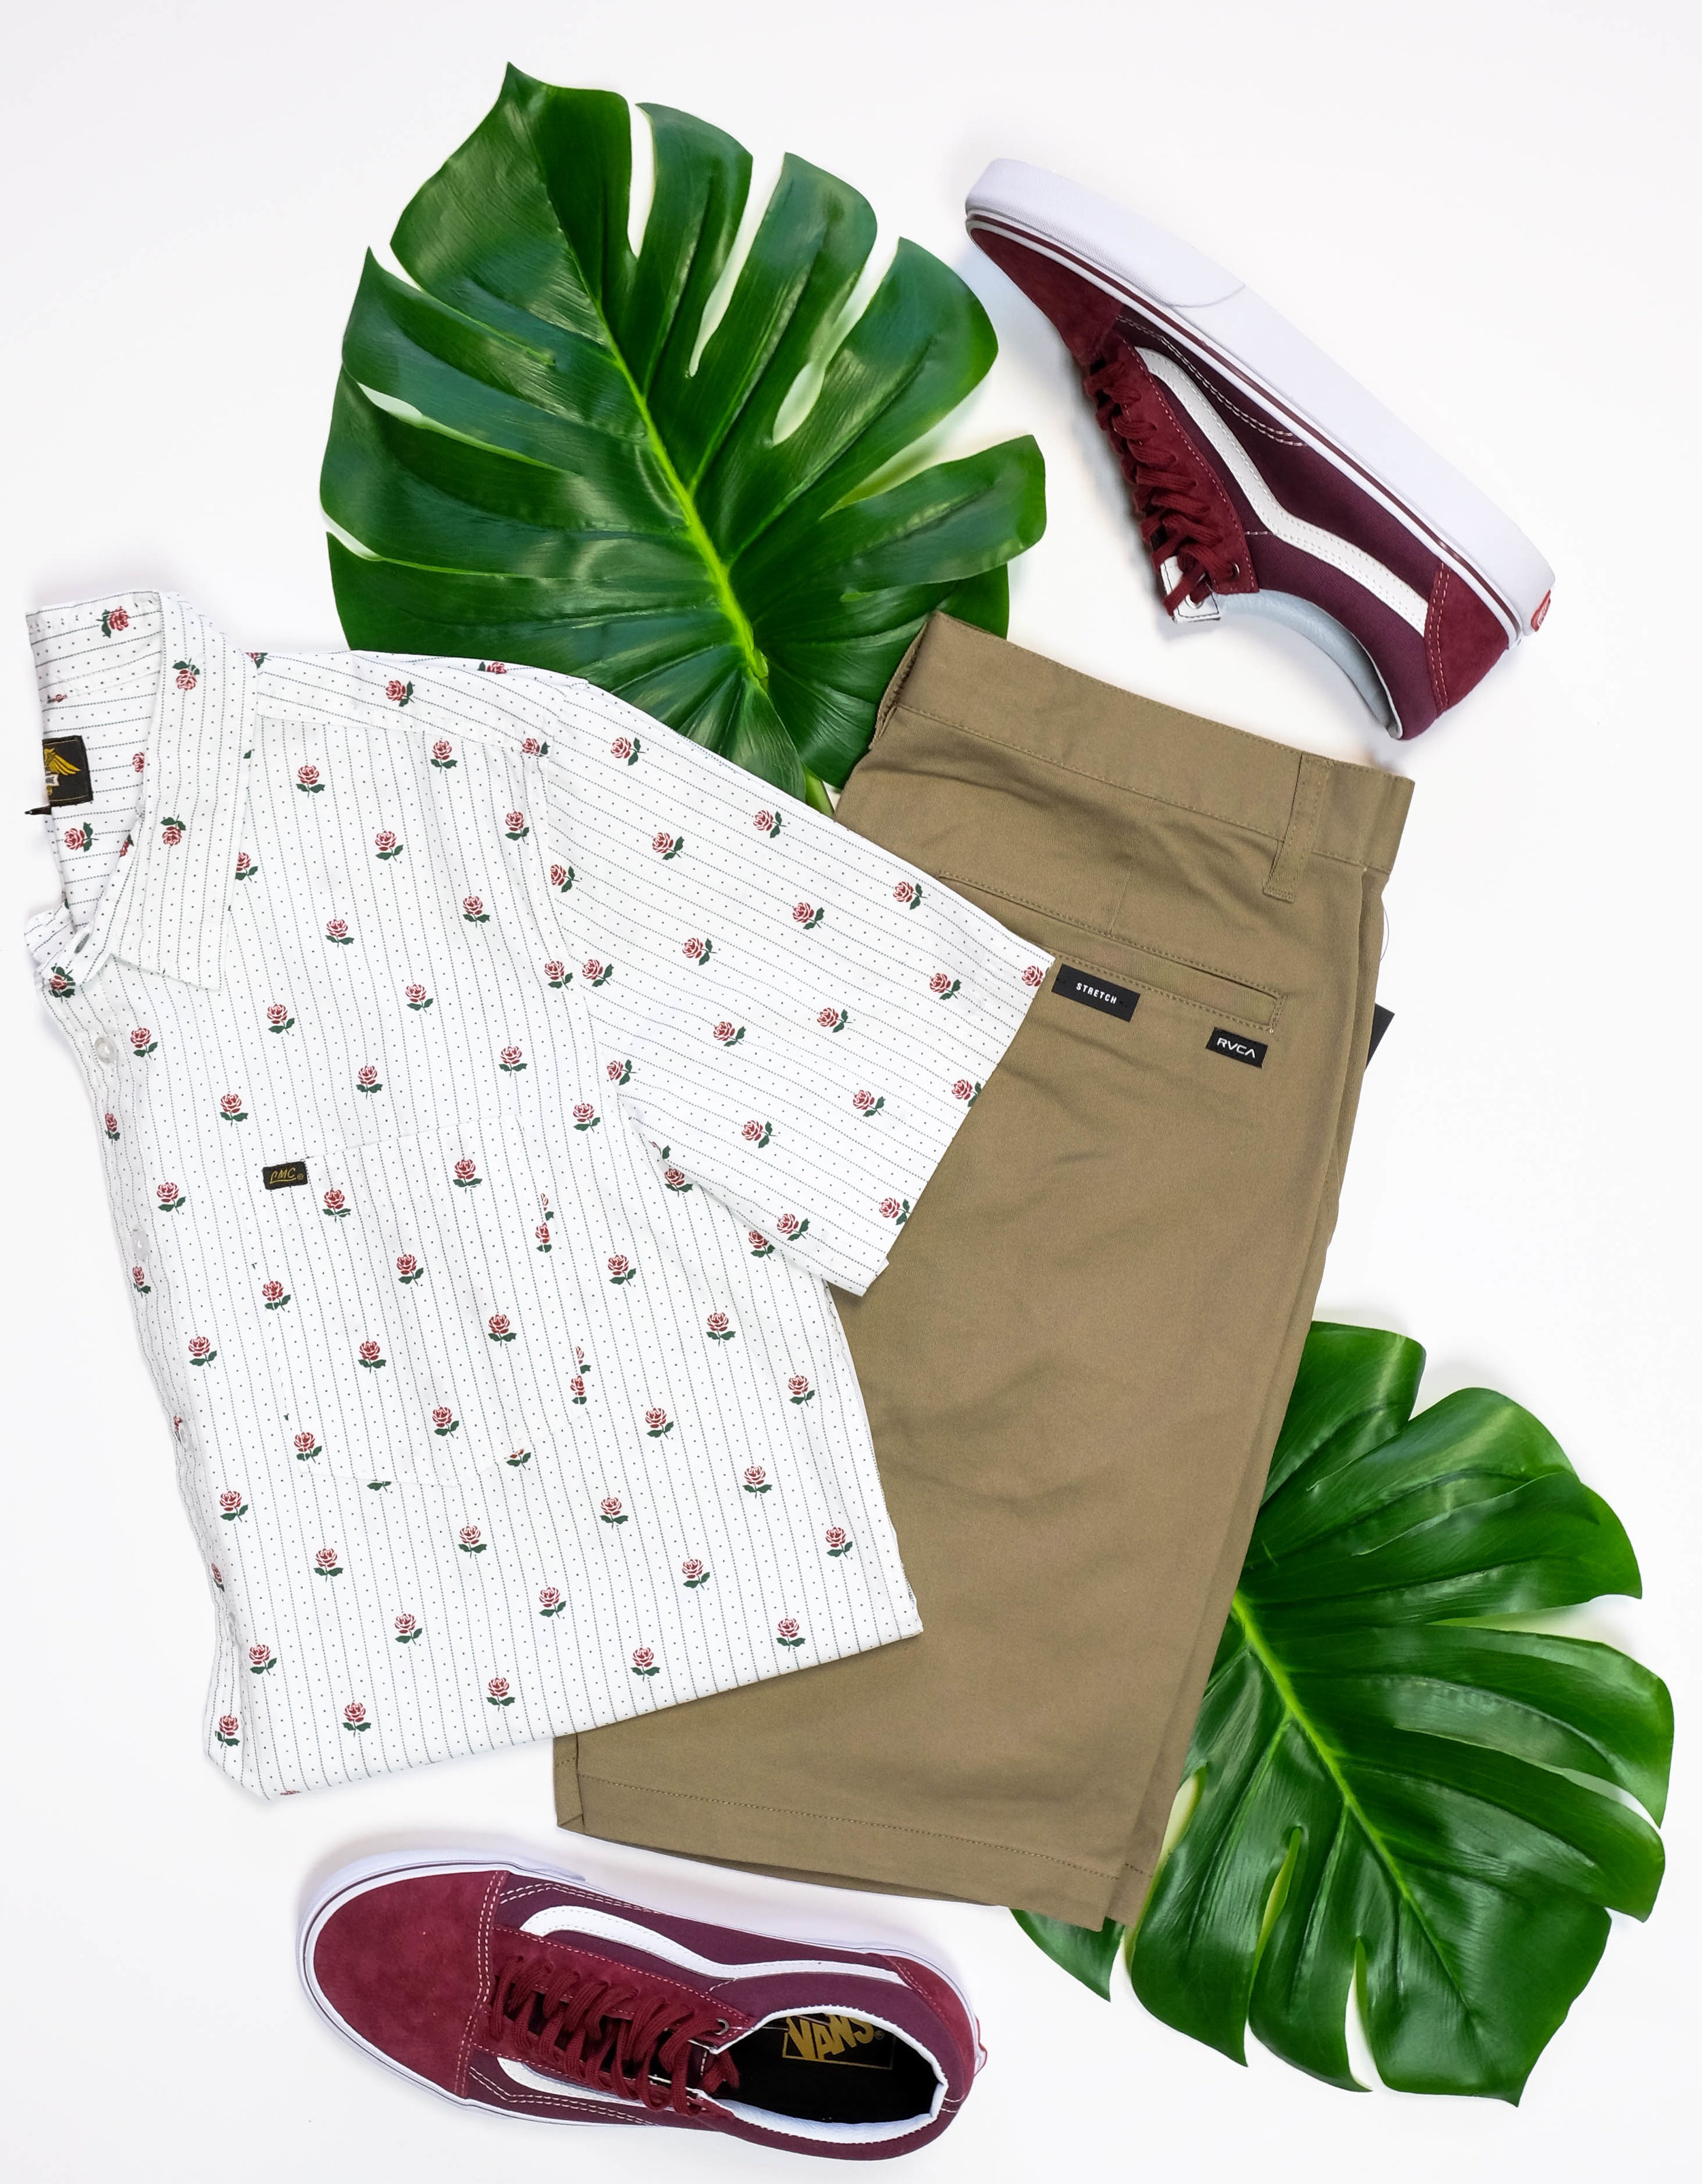 Pictured:  Dark Seas Button-Up  RVCA Shorts  Old Skool Vans  Make sure you come visit us and pick up these vacation essential goodies in store! Call if you have any questions or want us to ship!  xo Payton      Hours-    Mon-Sat: 10-8--    Sun: 11-6      Phone     541-617-6113